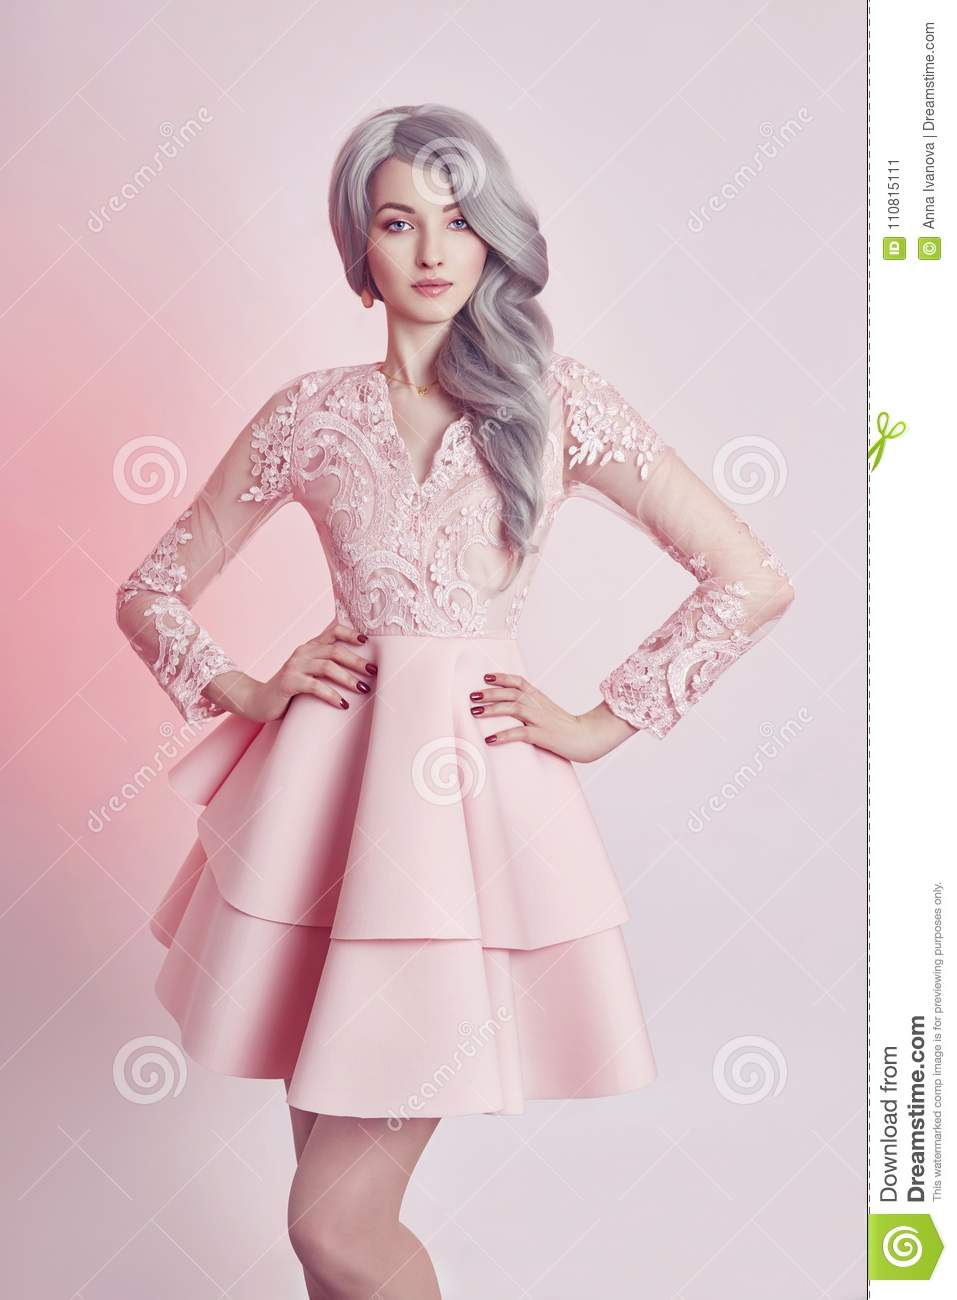 Beautiful anime doll girl in pink dress on pink background a gi